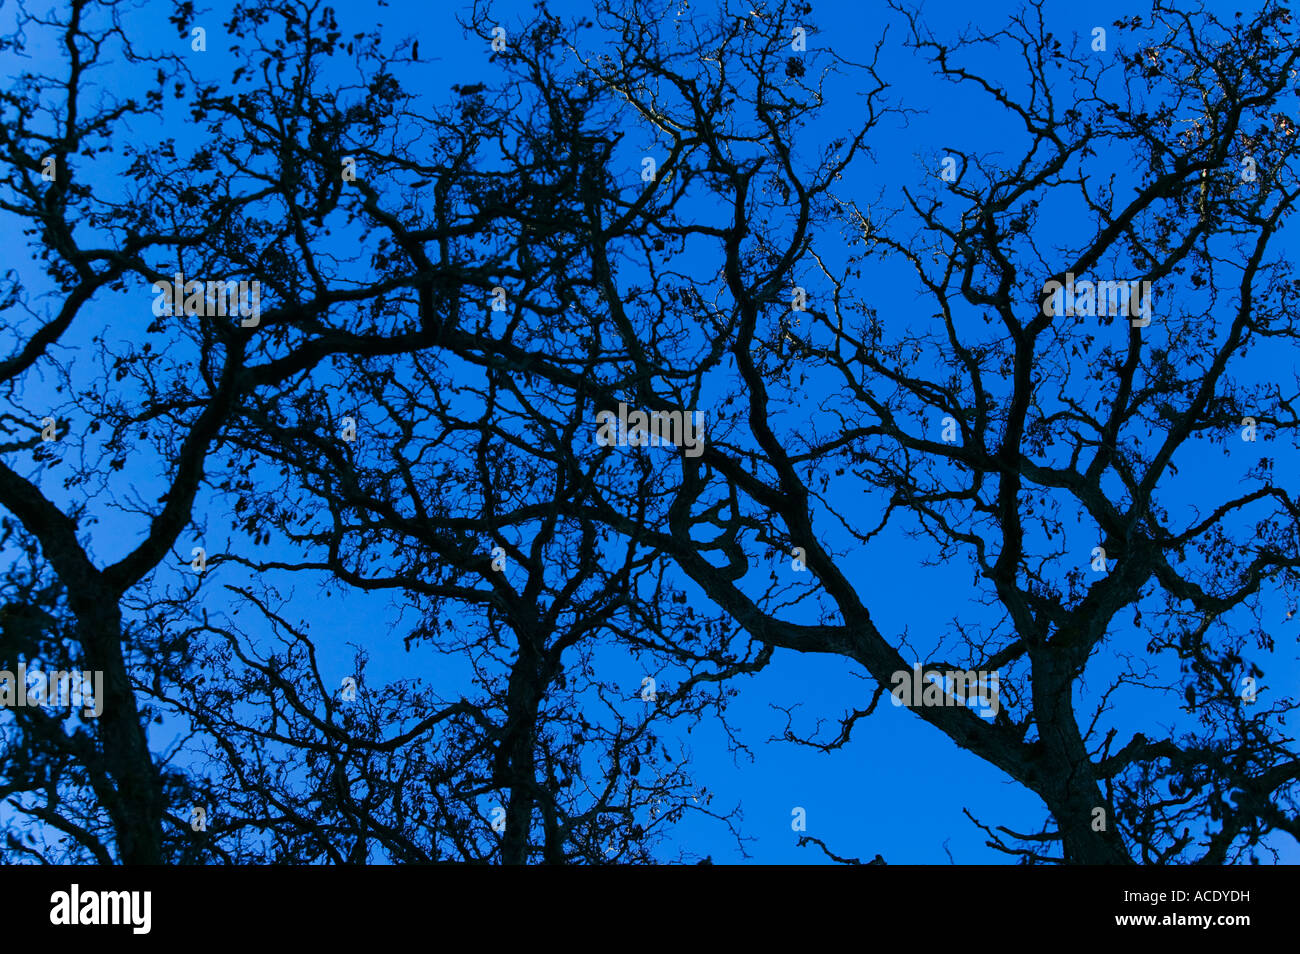 Oak Tree Branches against Blue Sky - Stock Image